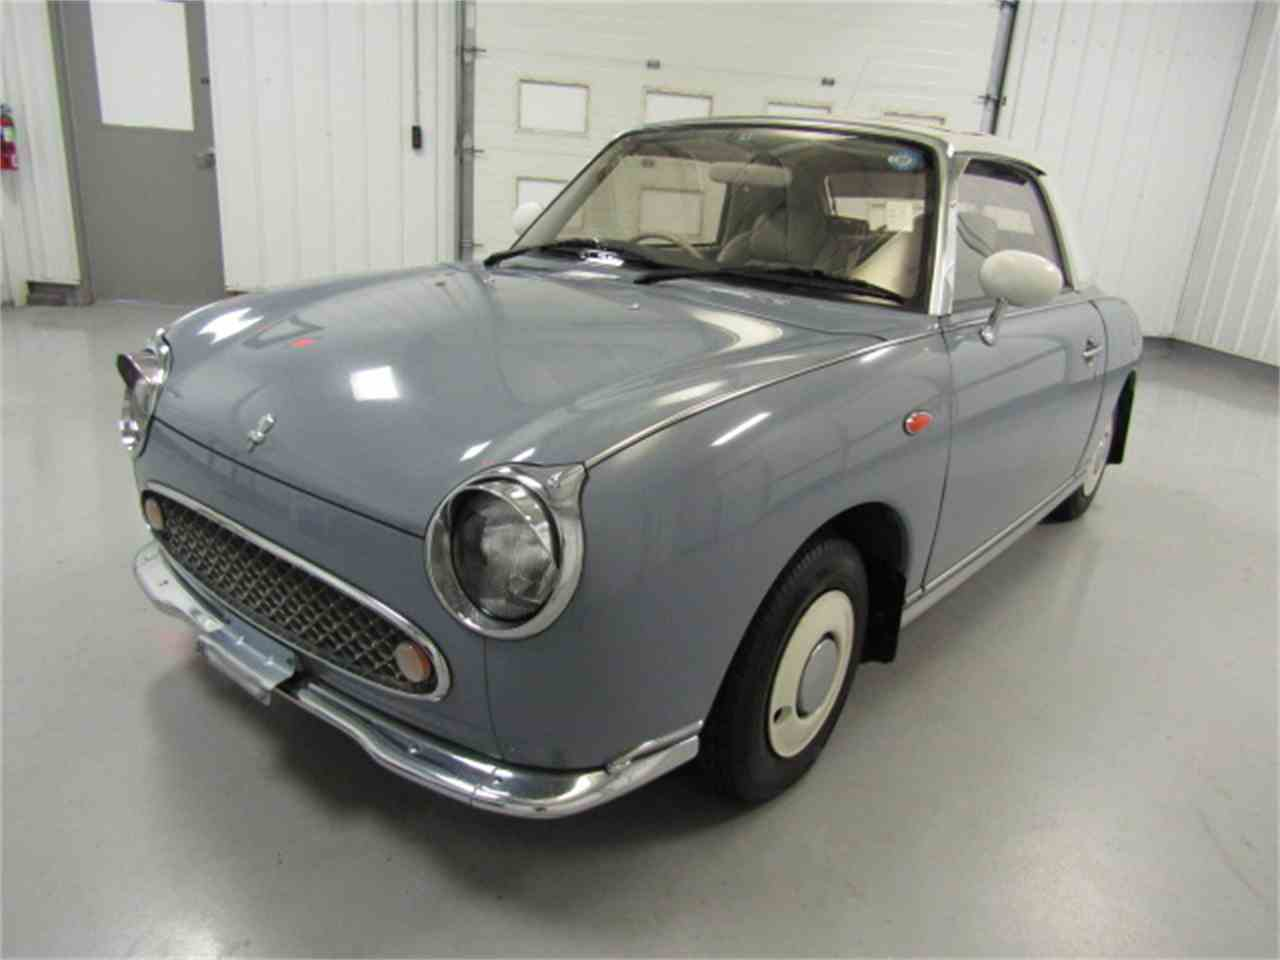 Large Picture of '91 Nissan Figaro located in Christiansburg Virginia - $17,900.00 - JL8M